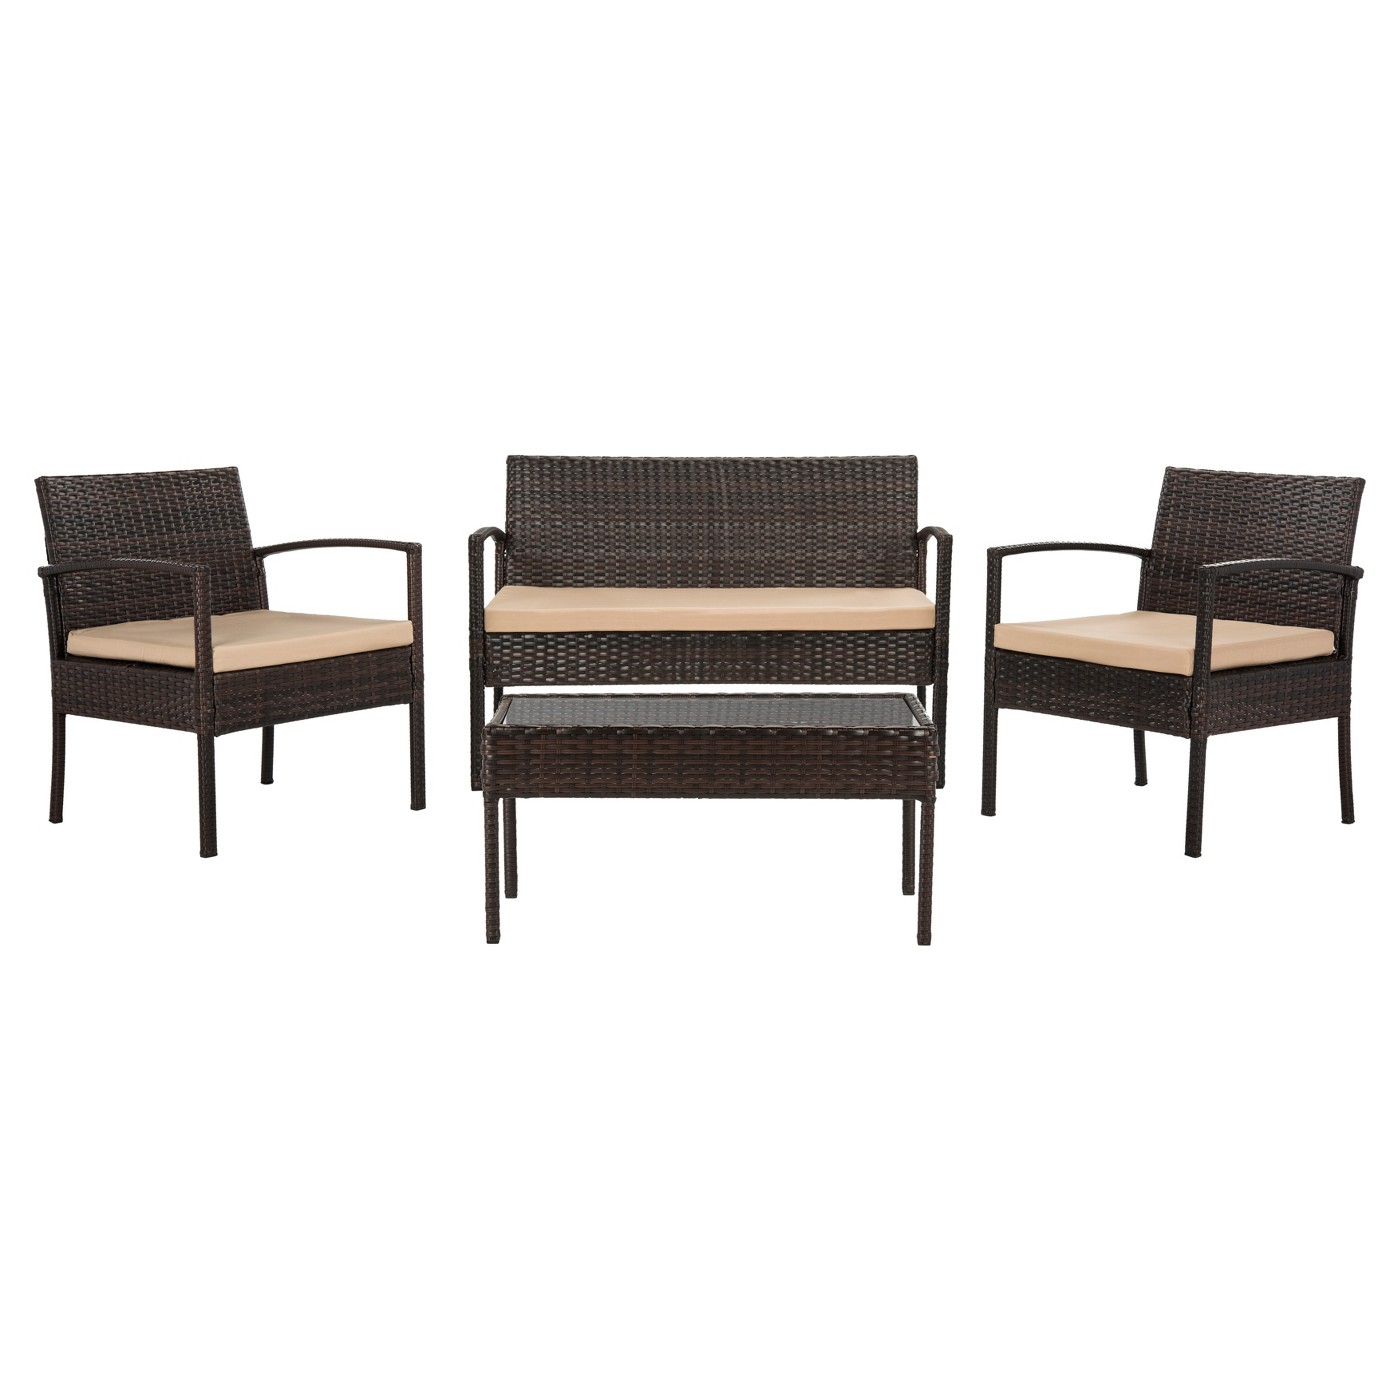 Safavieh Mattia 4pc All-Weather Wicker Patio Chat Set (Brown/Beige)